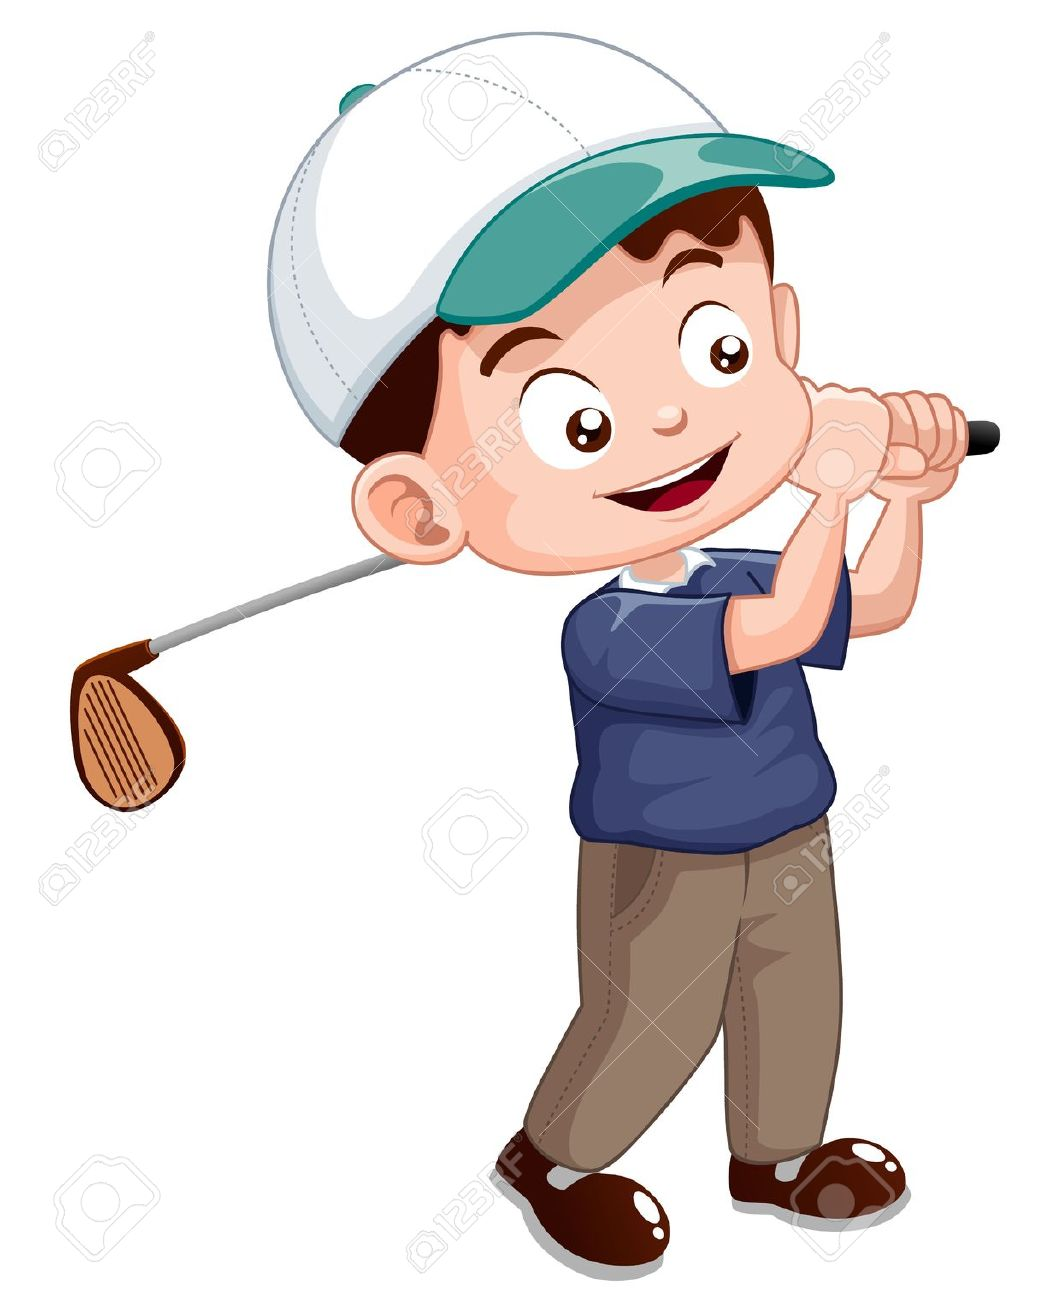 Golf player clipart - Clipground Kid Golfer Clipart